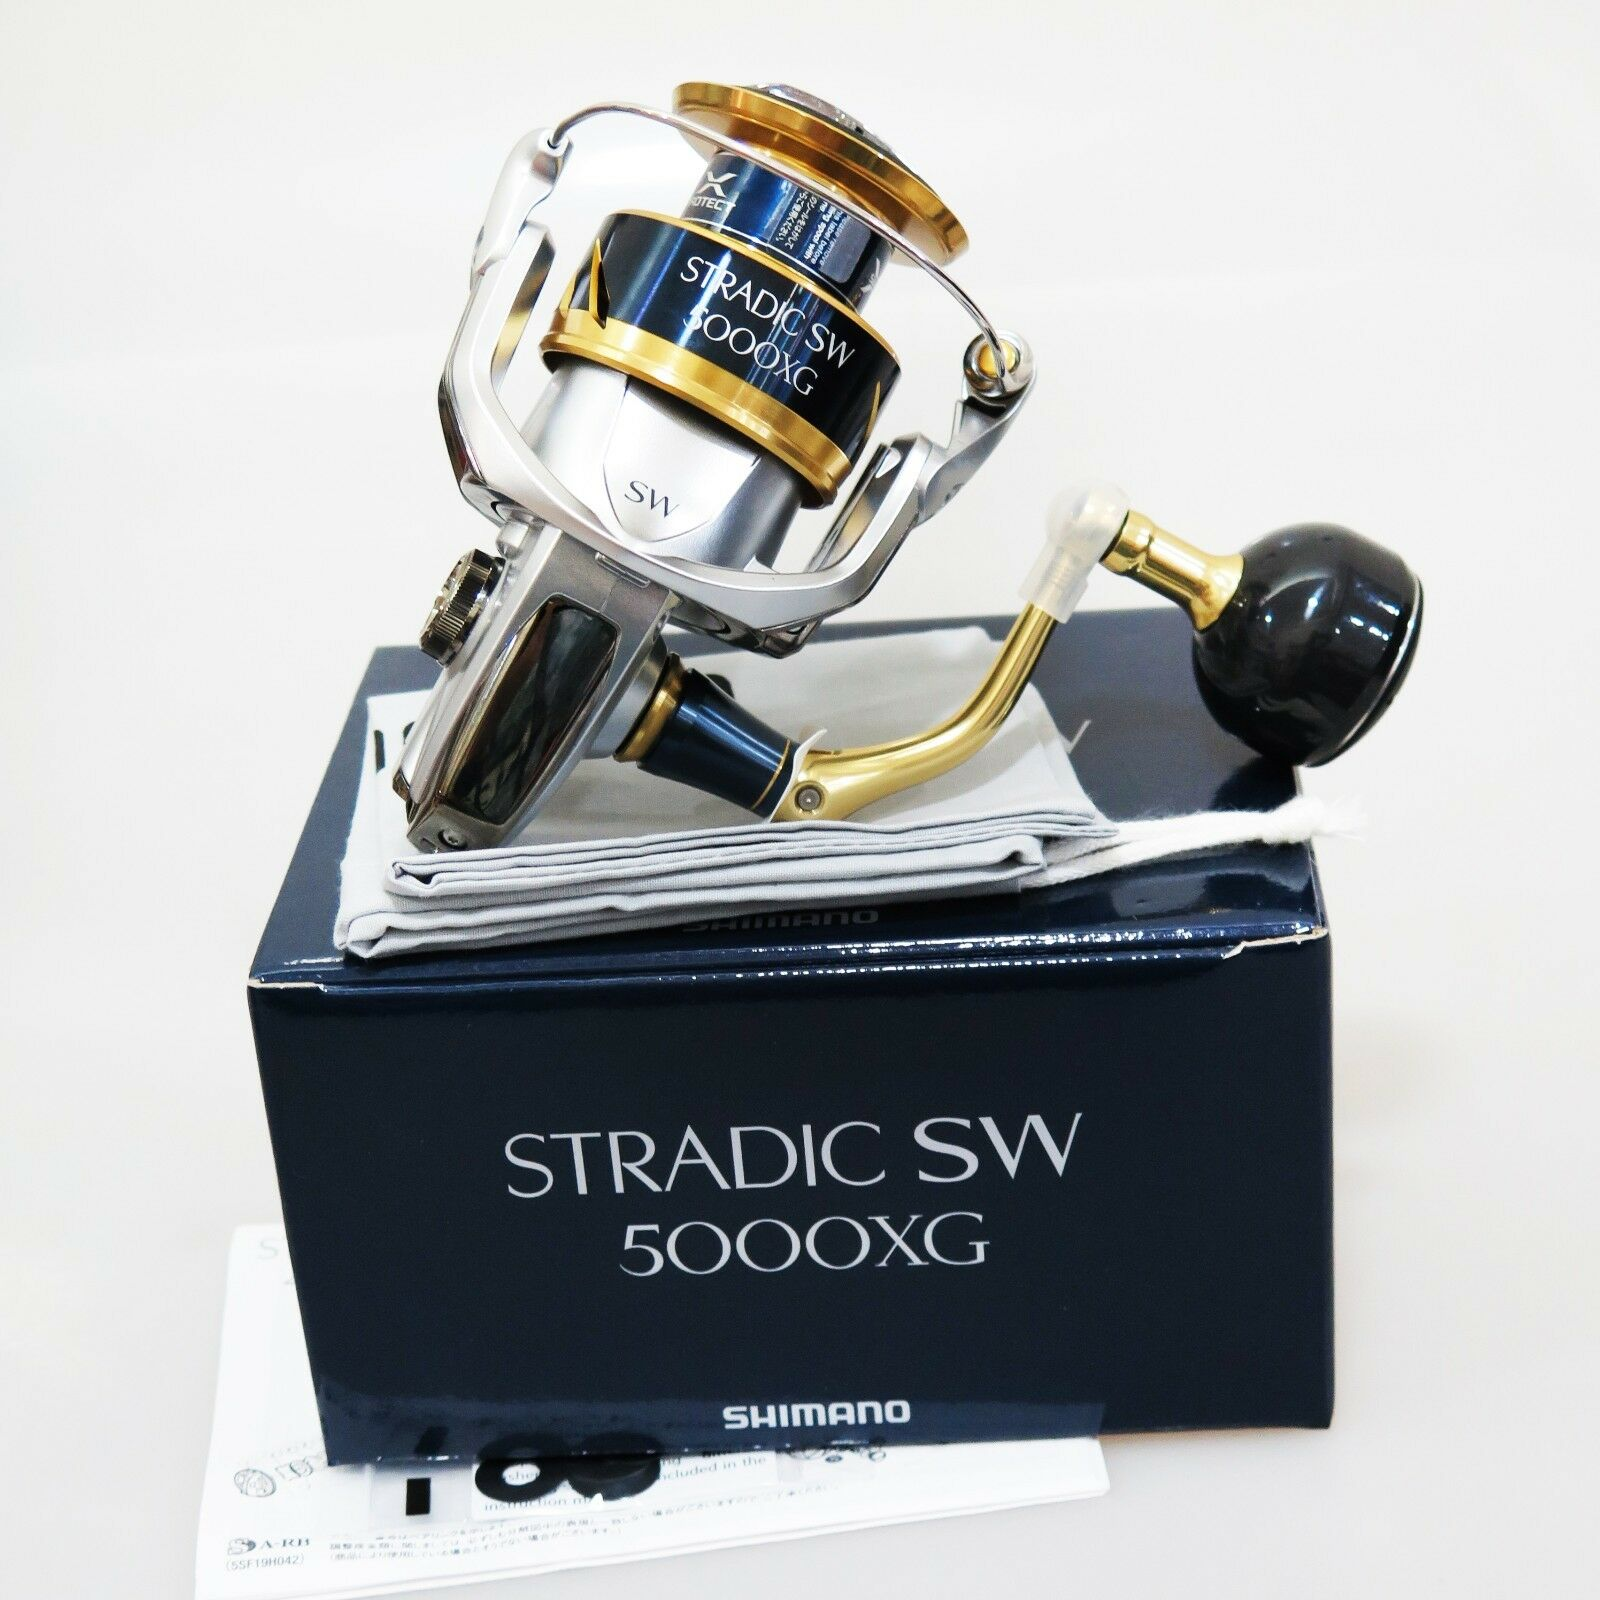 18 SHIMANO STRADIC SW5000XG Spinning Reel FEDEX PRIORITY 2 DAYS SHIP TO USA